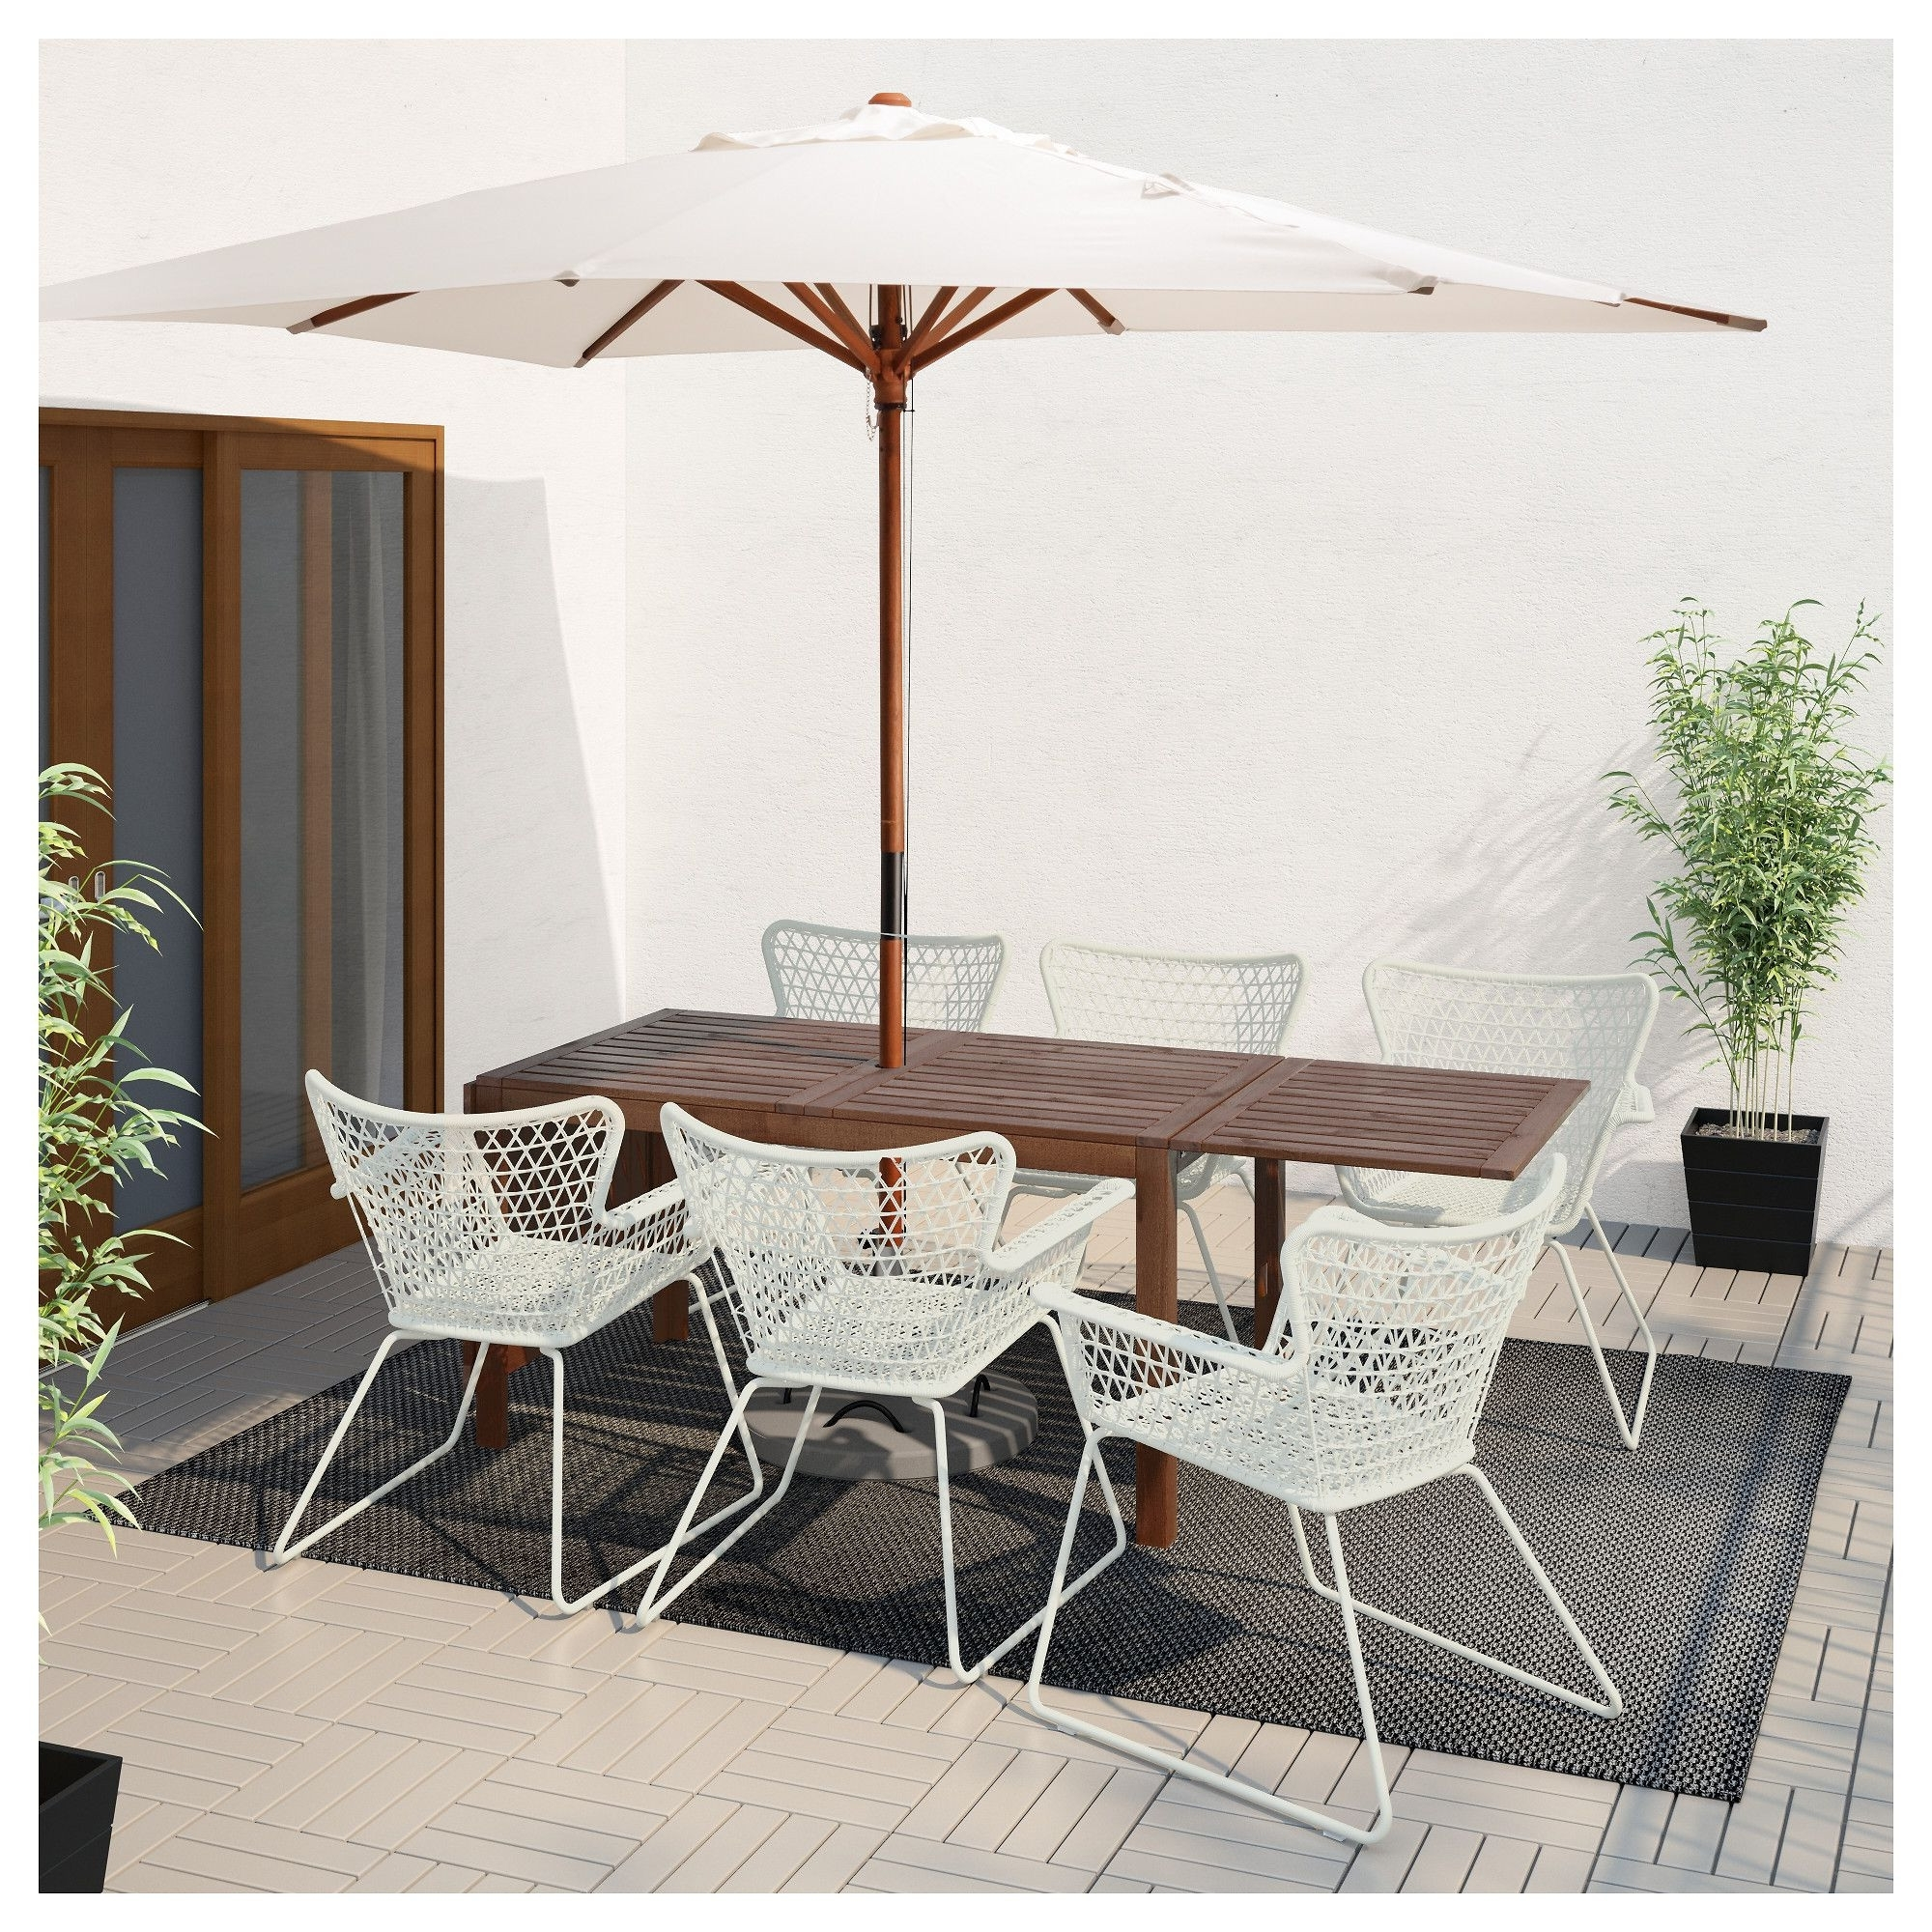 Commercial Outdoor Umbrellas Elegant Best For High Wind Areas This Intended For Fashionable Patio Umbrellas For High Wind Areas (View 4 of 20)